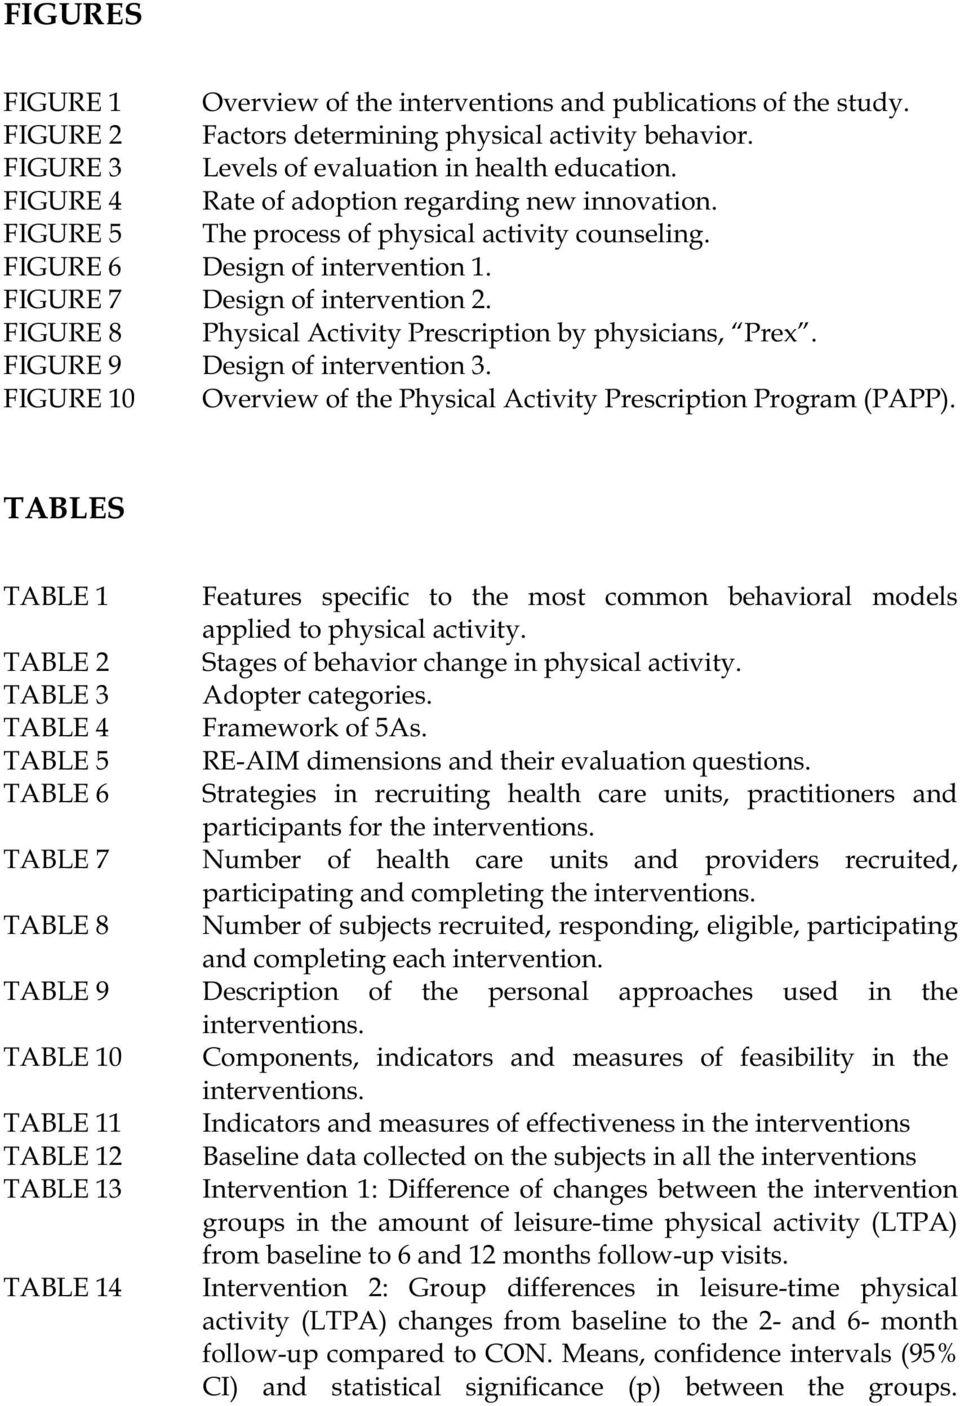 FIGURE 8 Physical Activity Prescription by physicians, Prex. FIGURE 9 Design of intervention 3. FIGURE 10 Overview of the Physical Activity Prescription Program (PAPP).